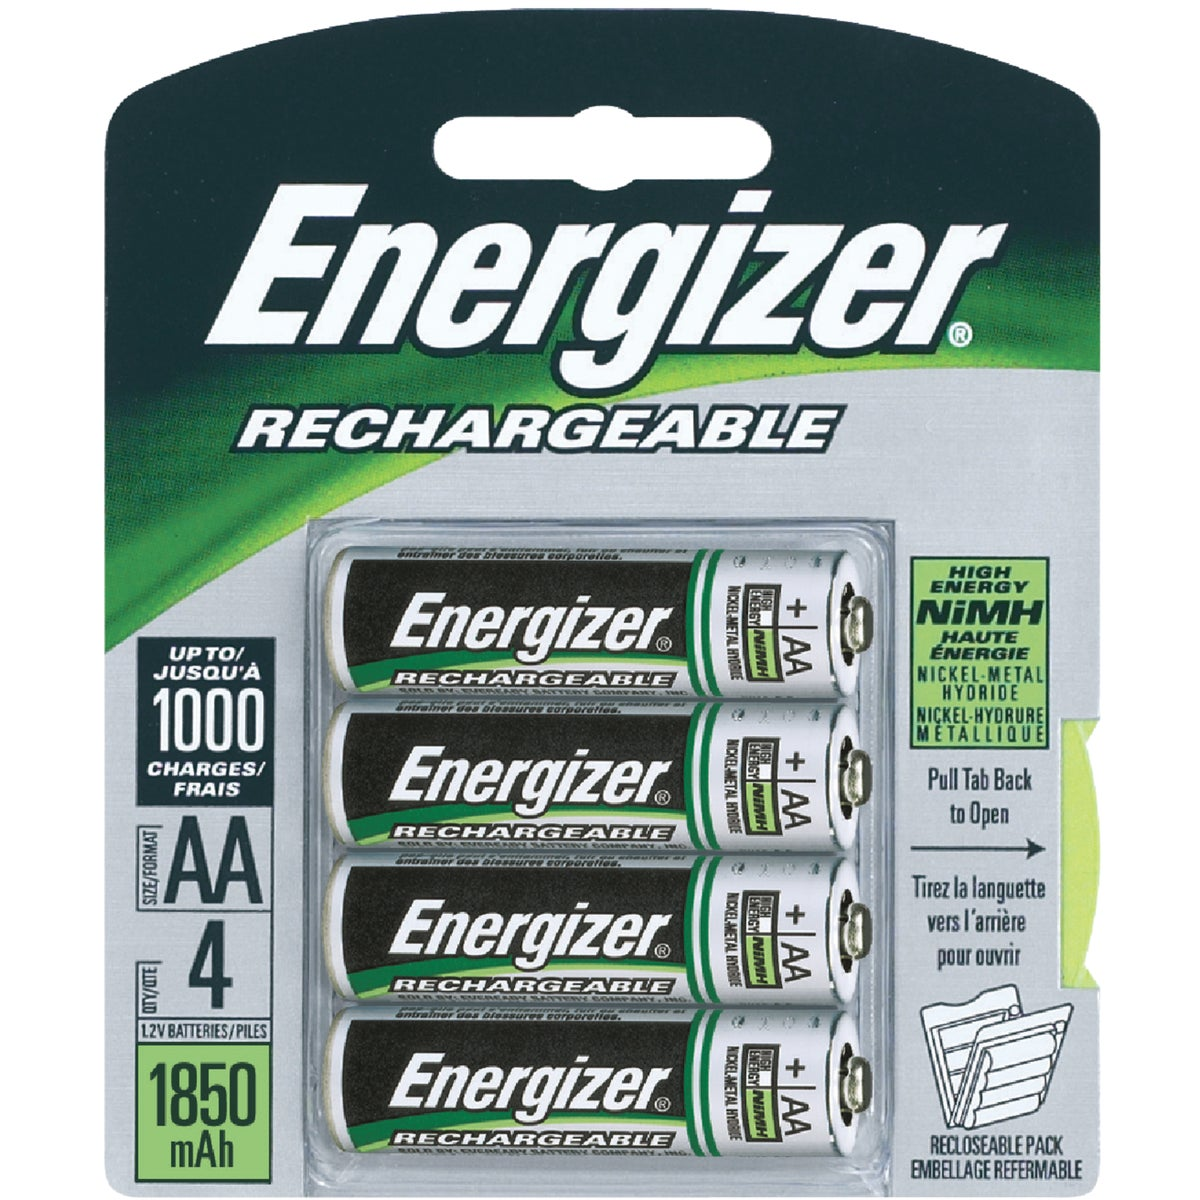 4CD AA RECHARGE BATTERY - NH15BP4 by Energizer